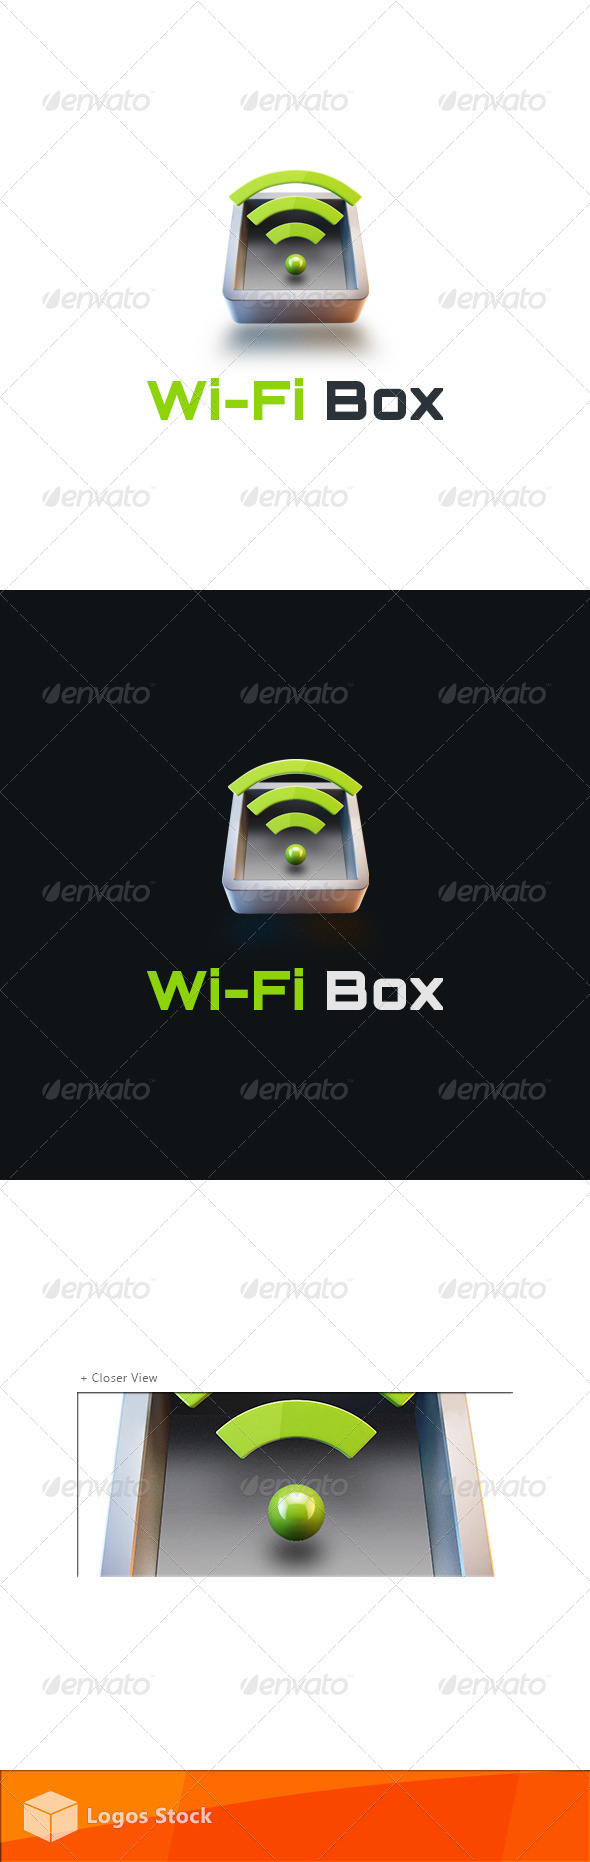 Technology Logo - WiFi Box